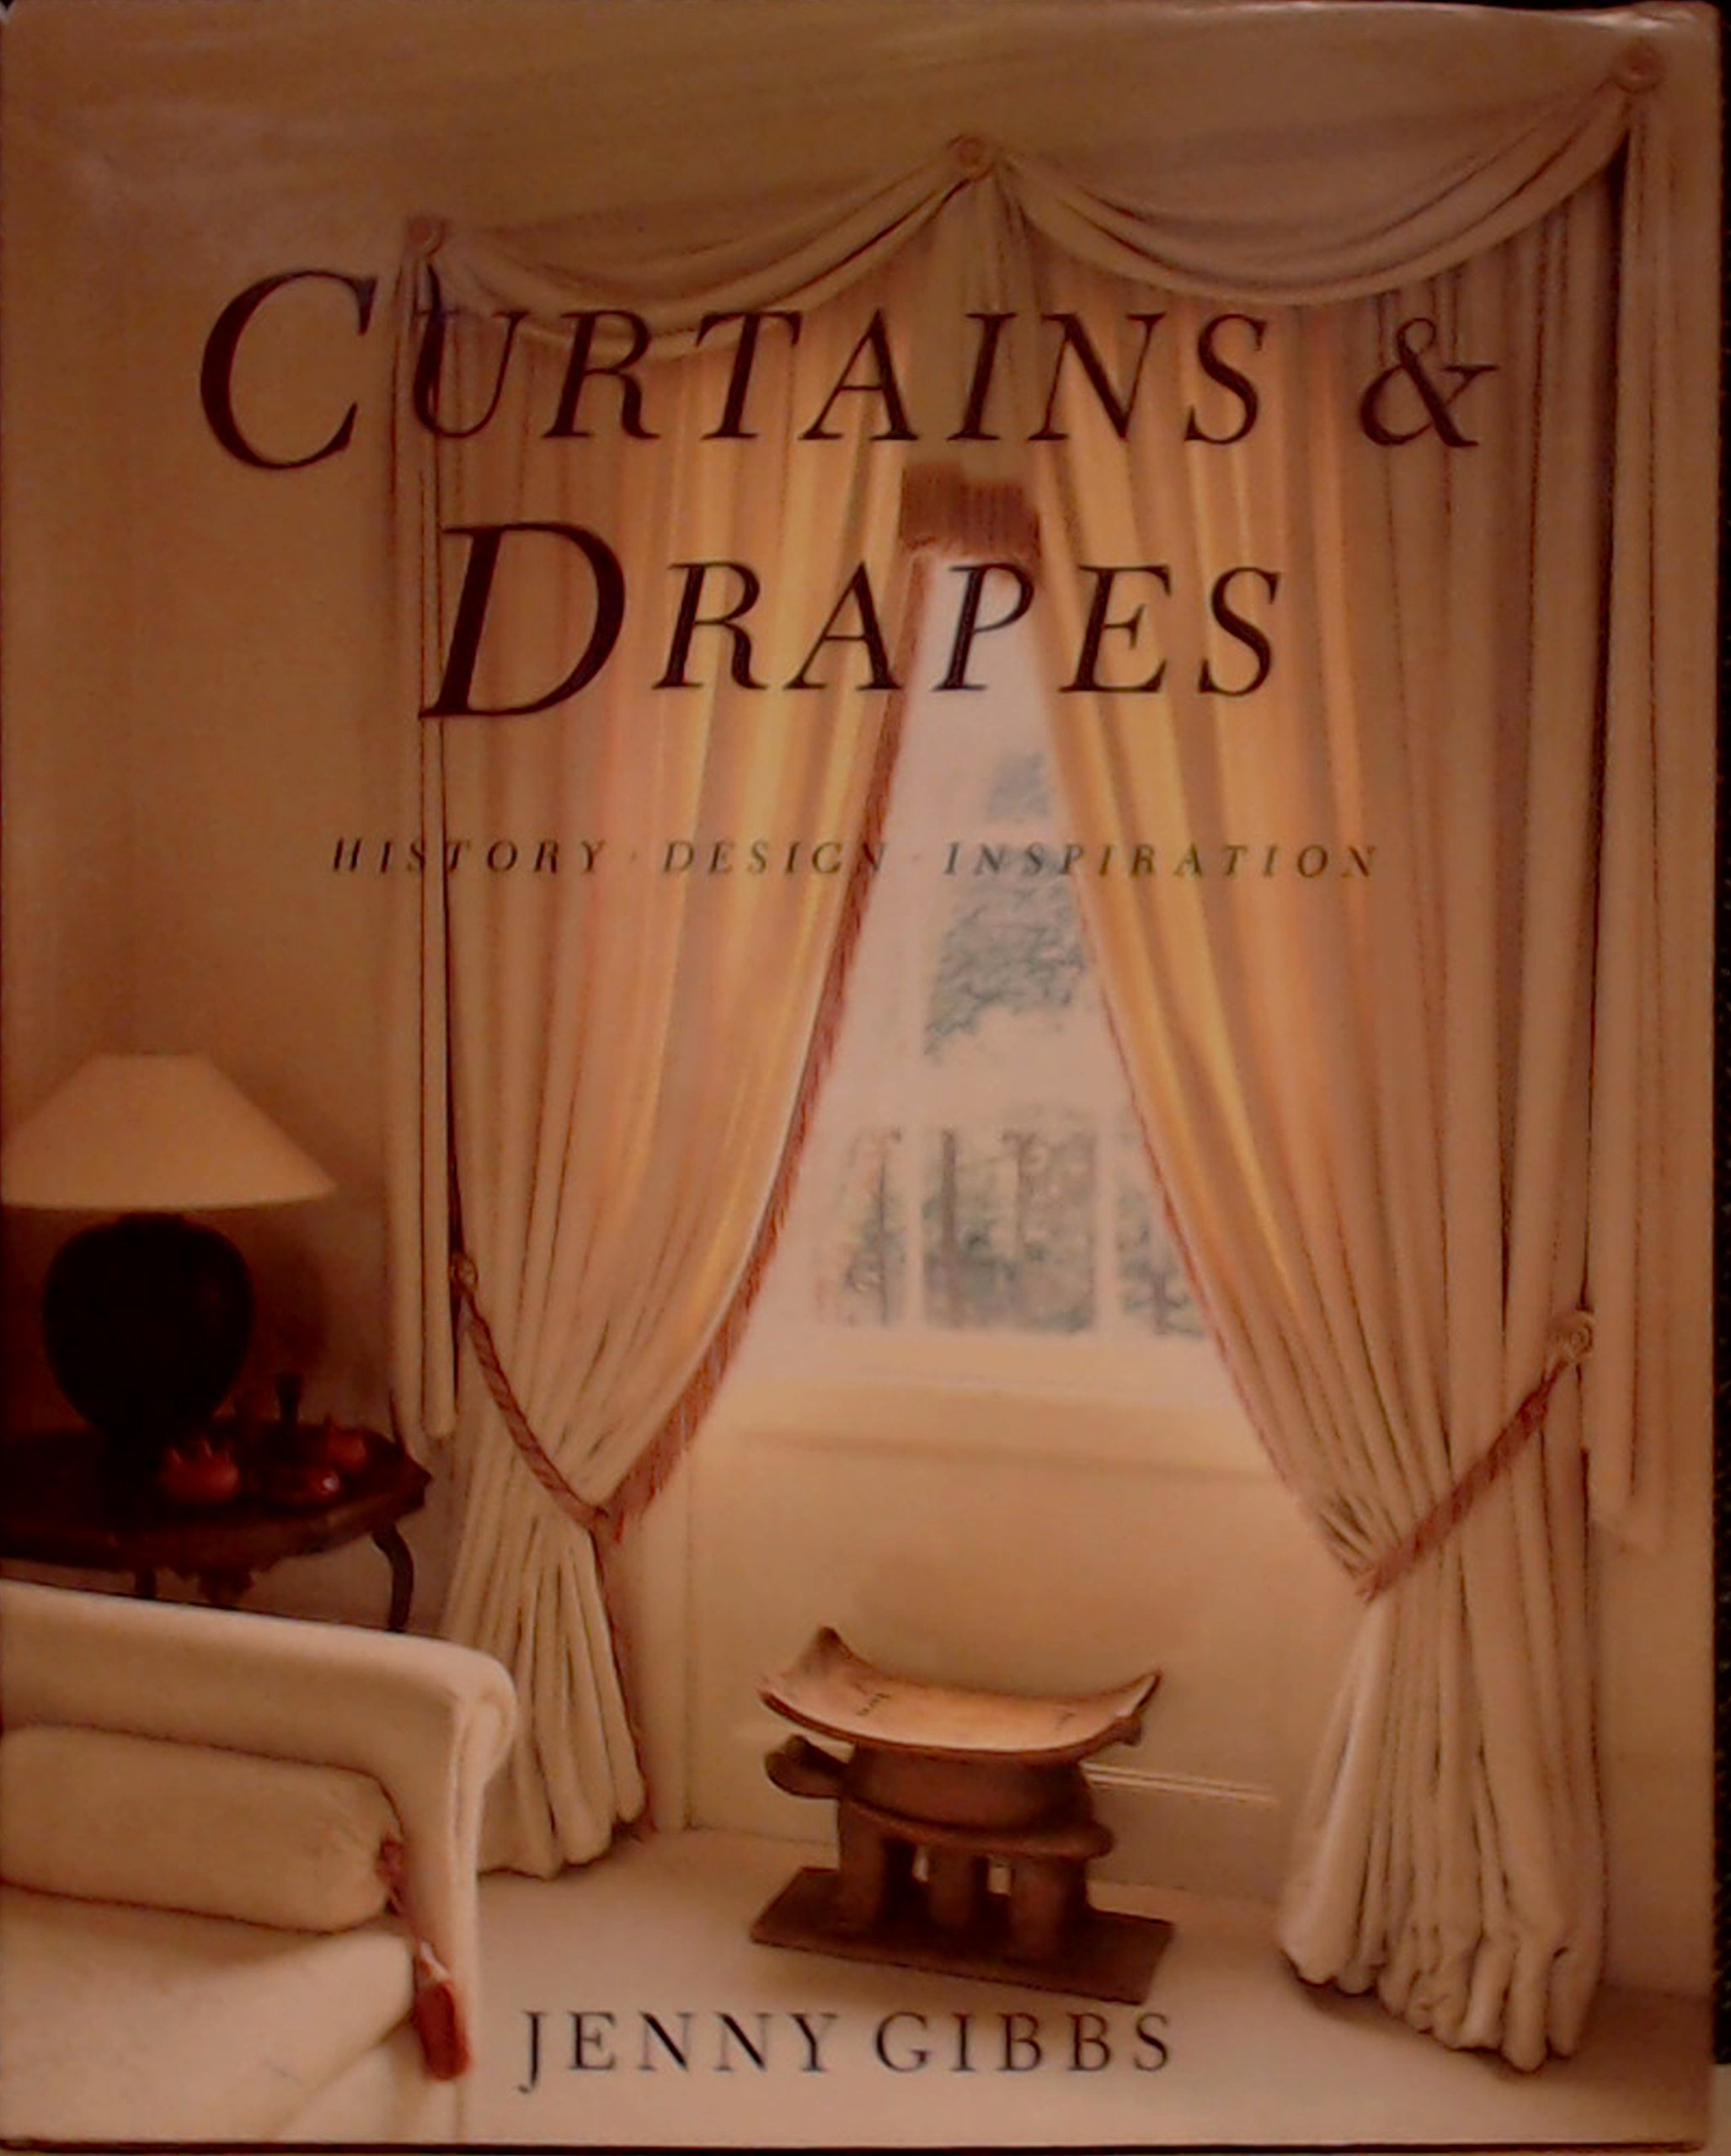 Curtains and Drapes History, Design, Inspiration Jenny